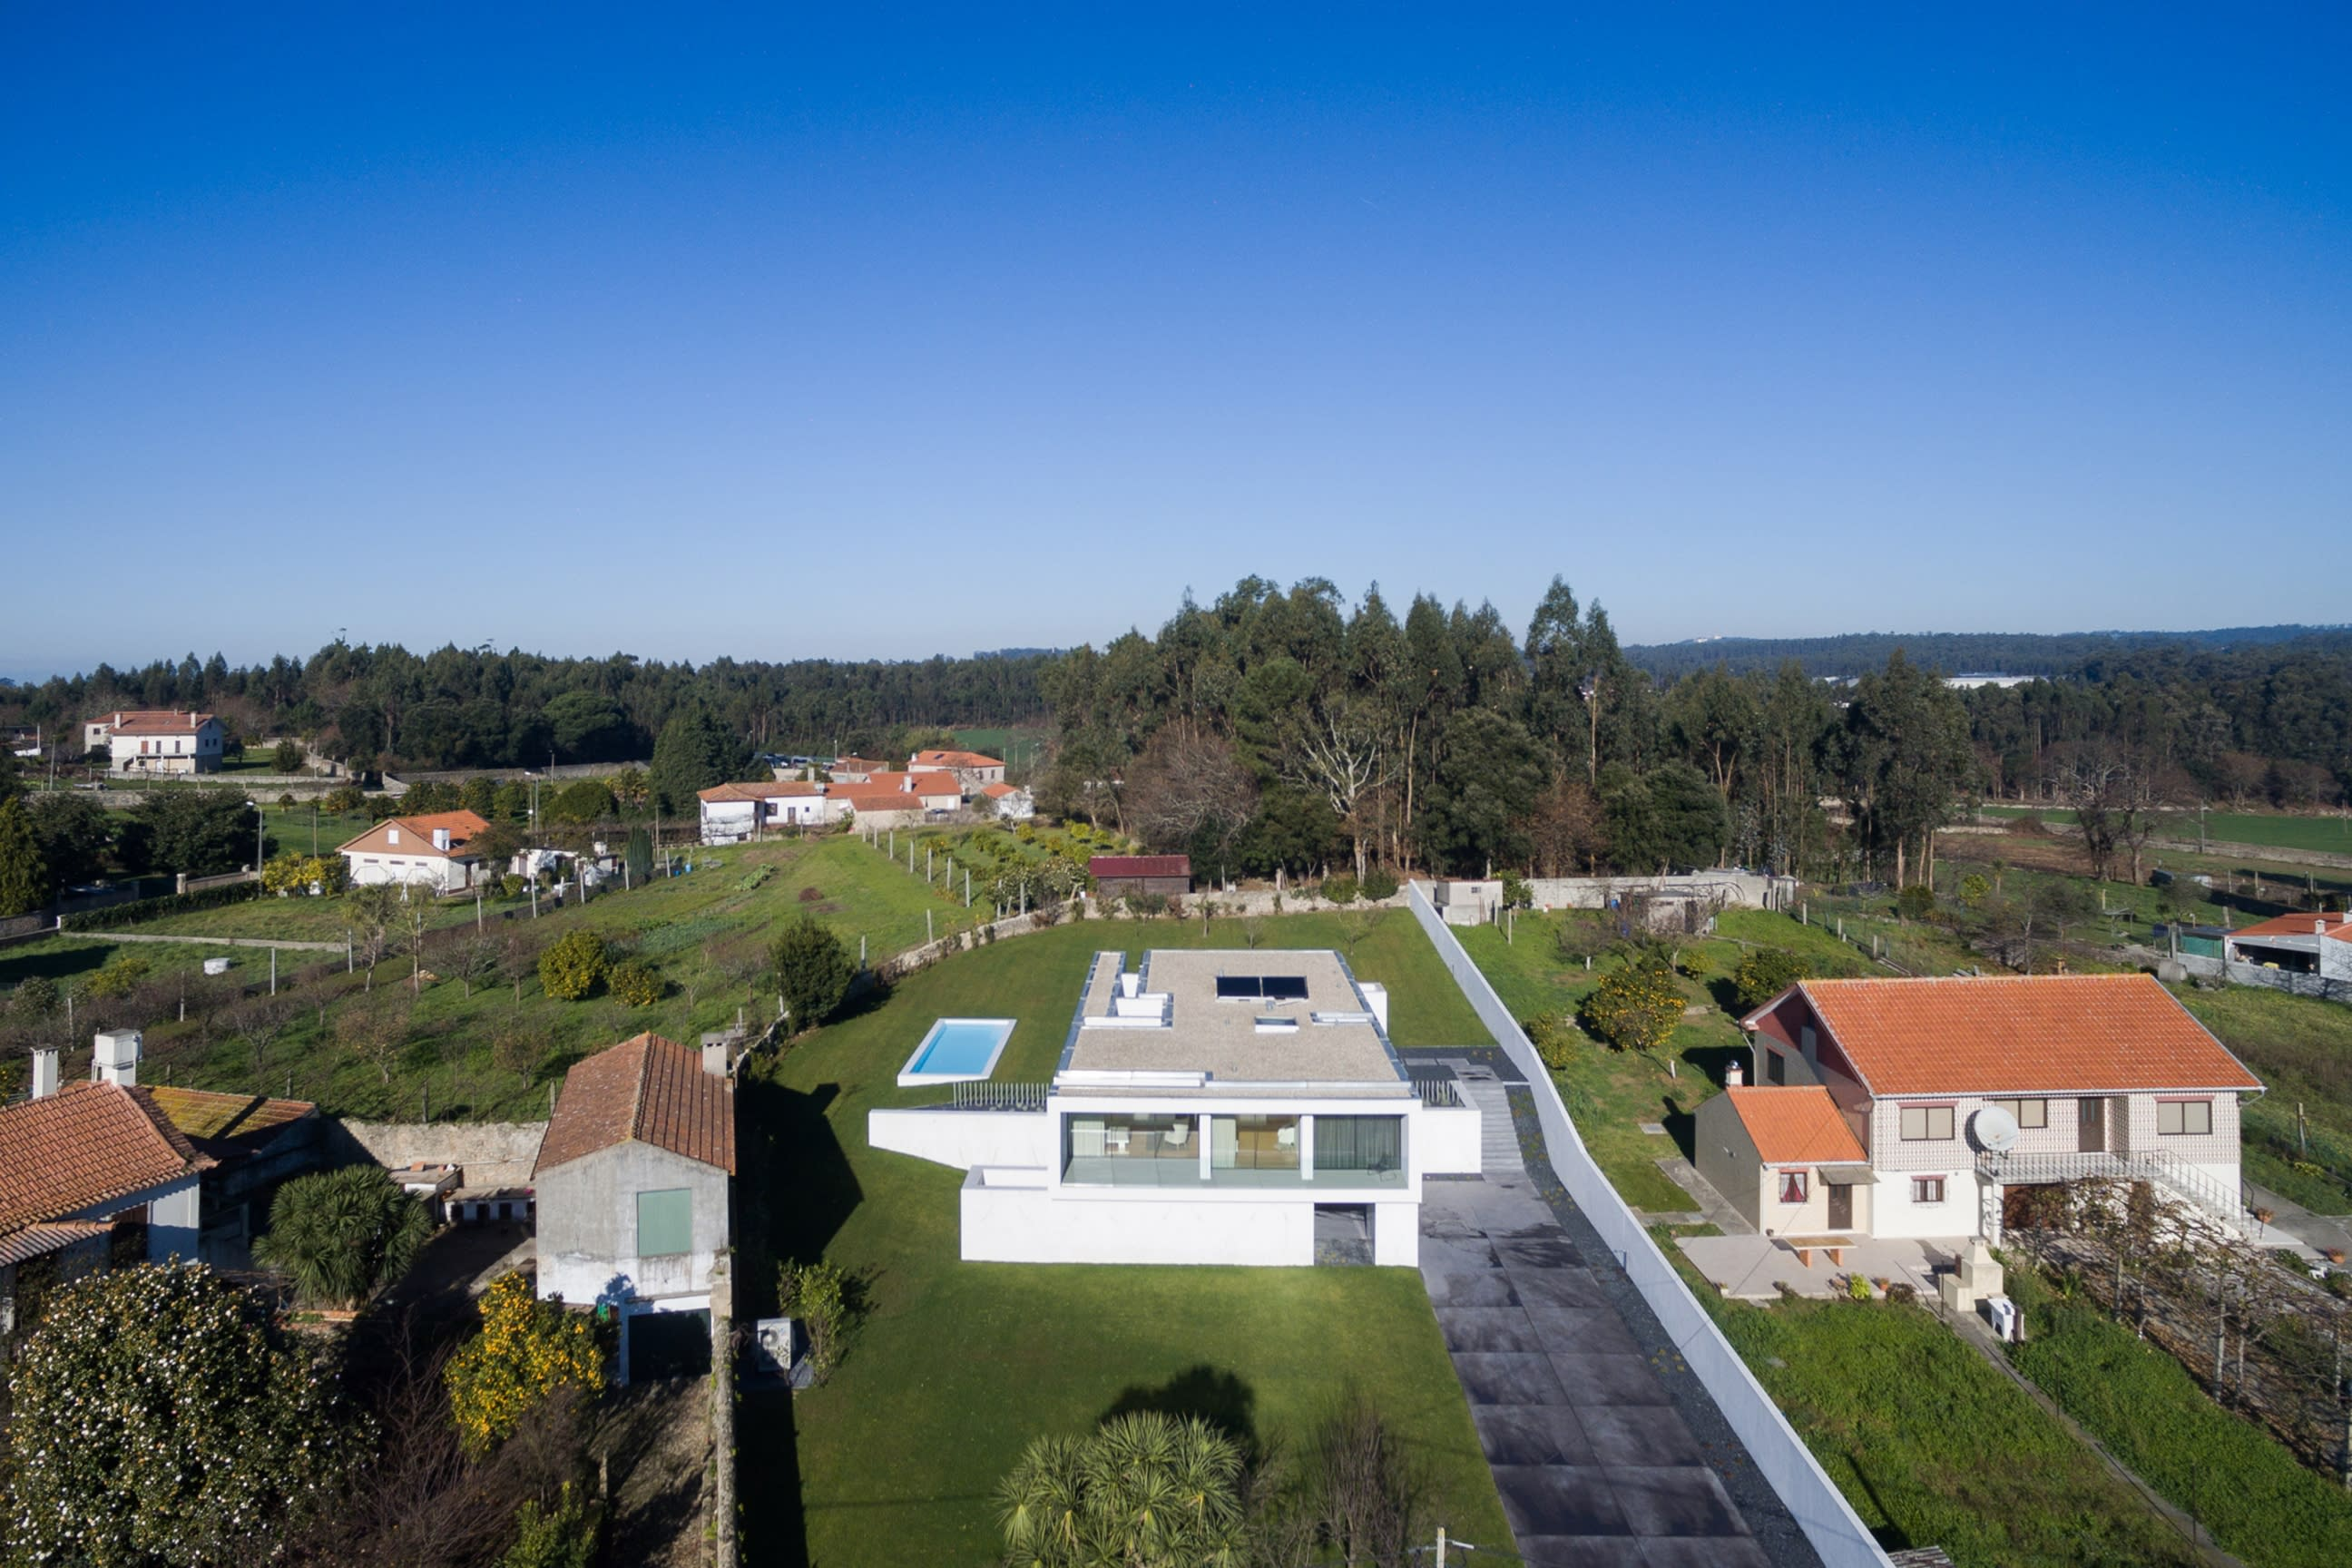 vila do conde muslim dating site 25 of the best villas in europe by condé nast this secluded old bergerie (dating from 1954) on the doorstep the unesco world heritage site of cinque.